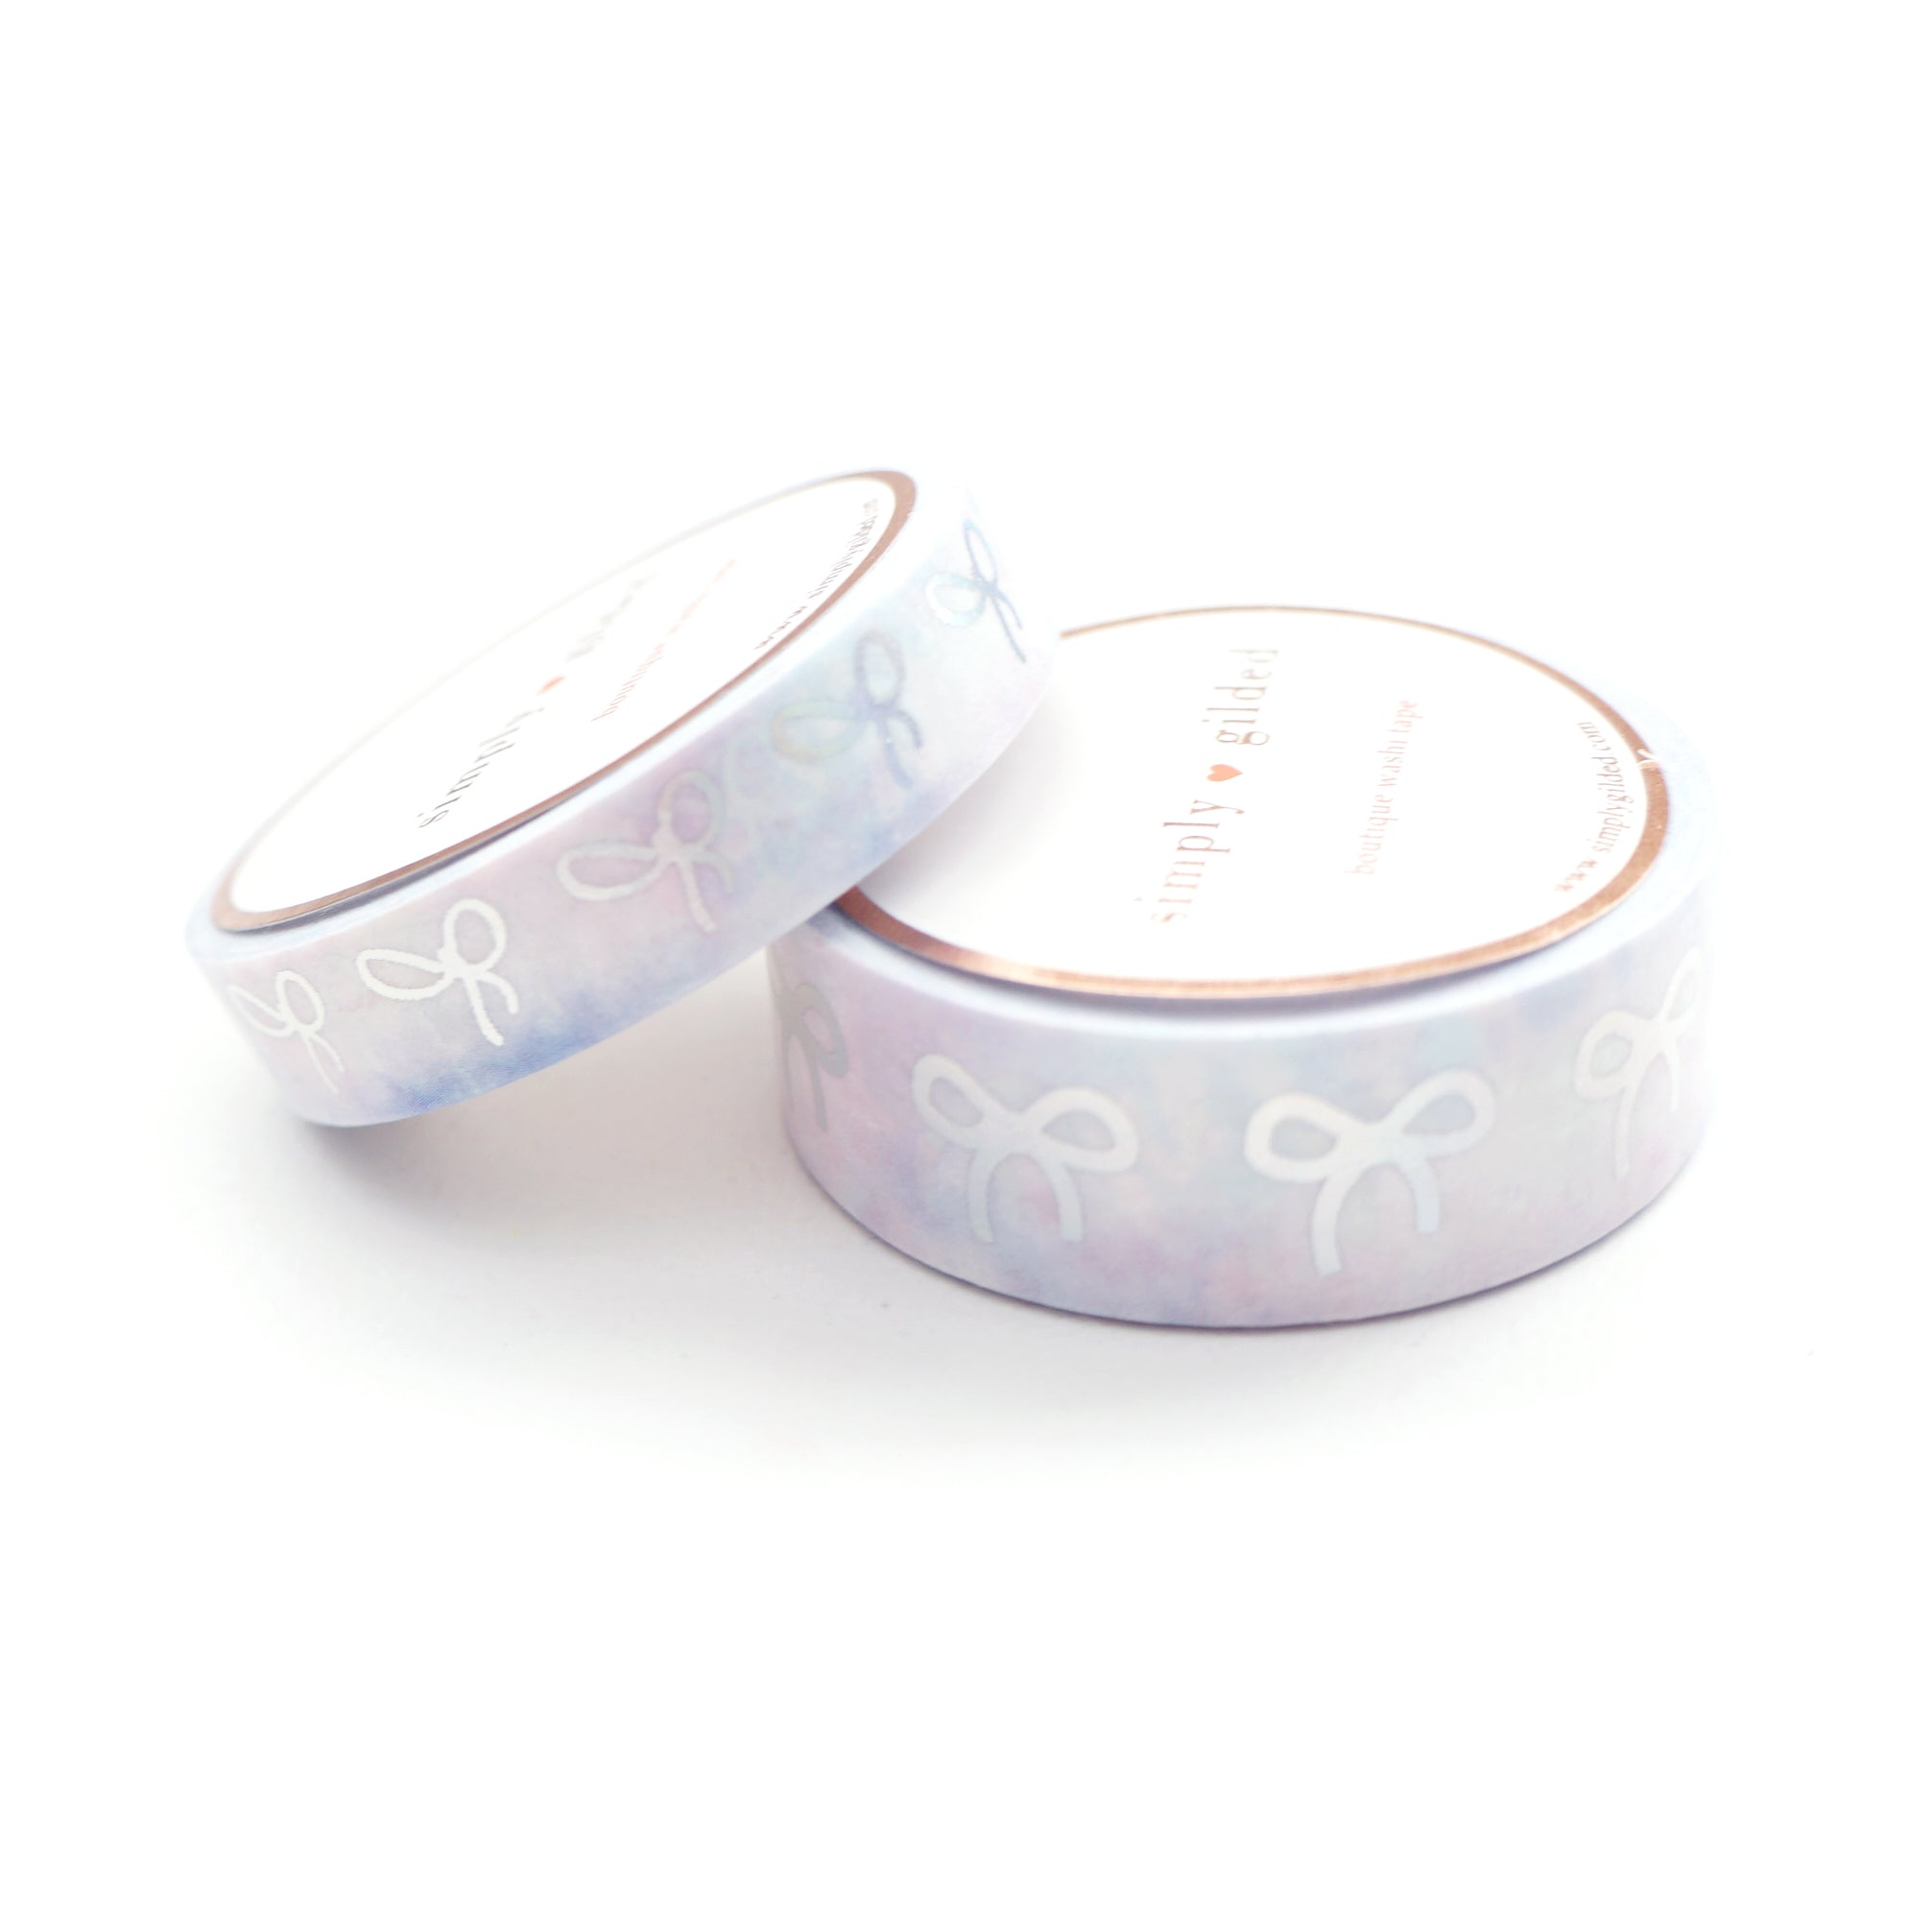 WASHI TAPE 15mm/10mm BOW set - WHISPER tie-dye + silver HOLO (June 22nd Release)